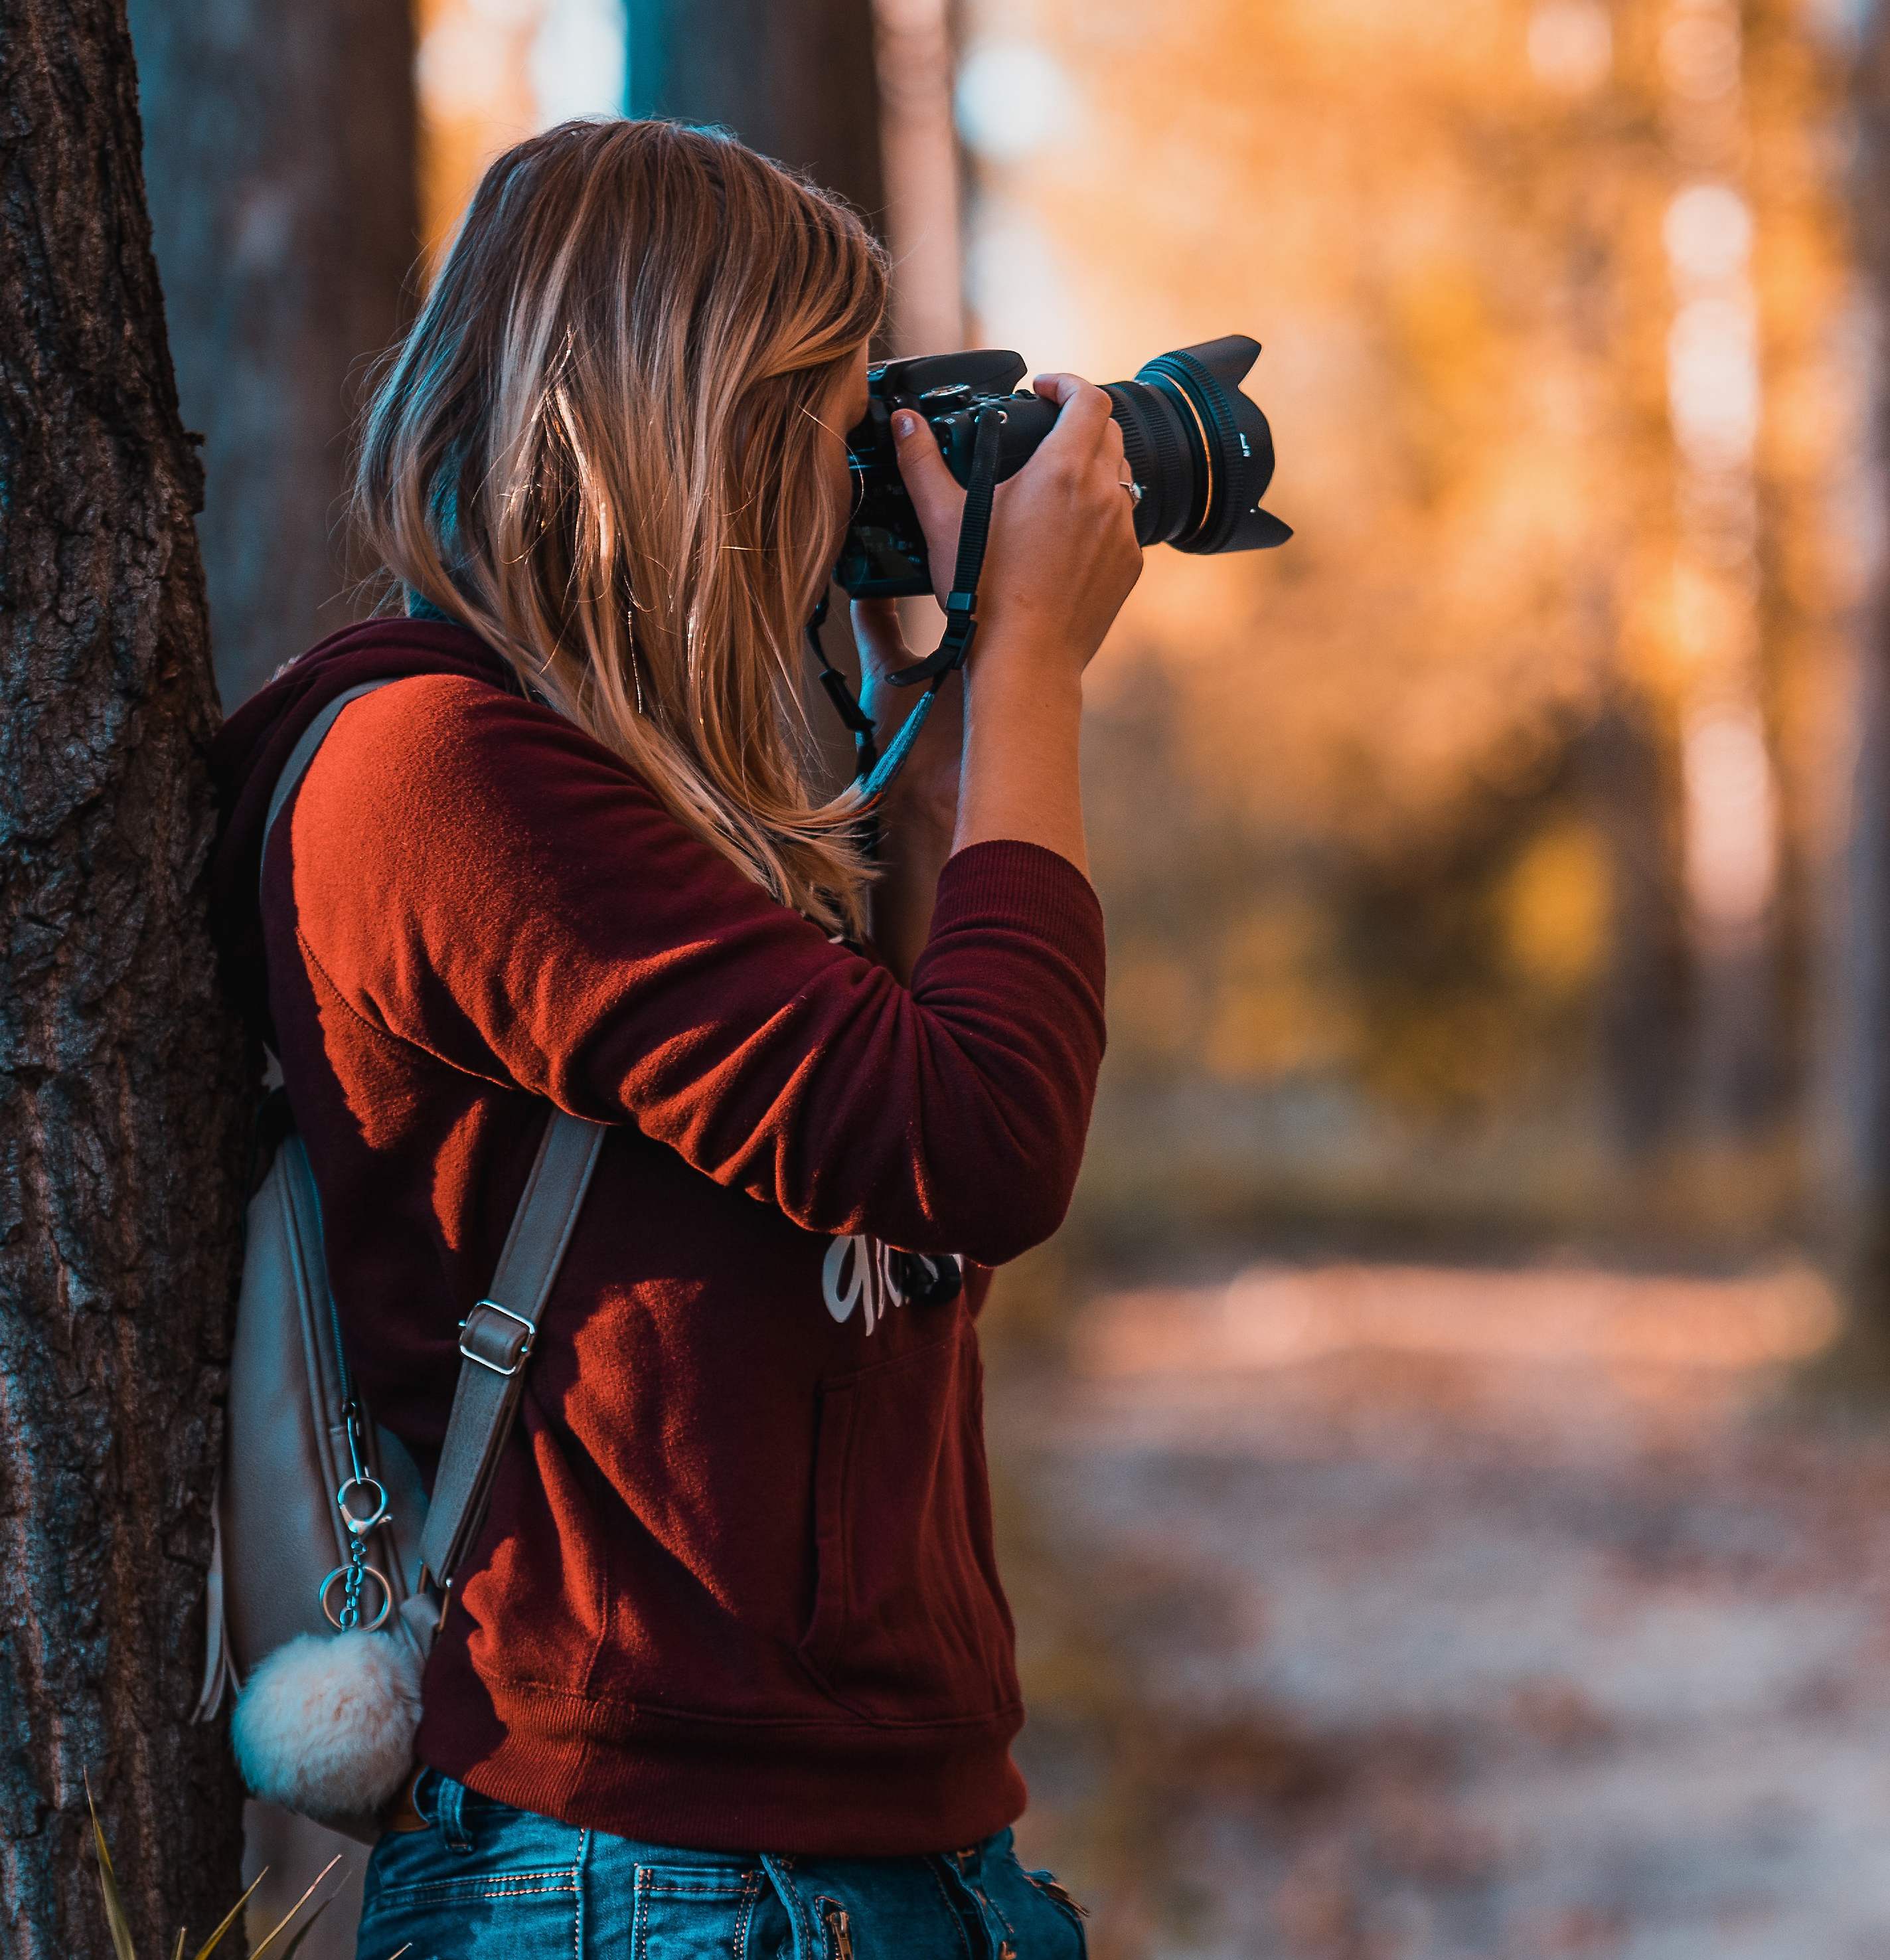 Image of young woman with camera